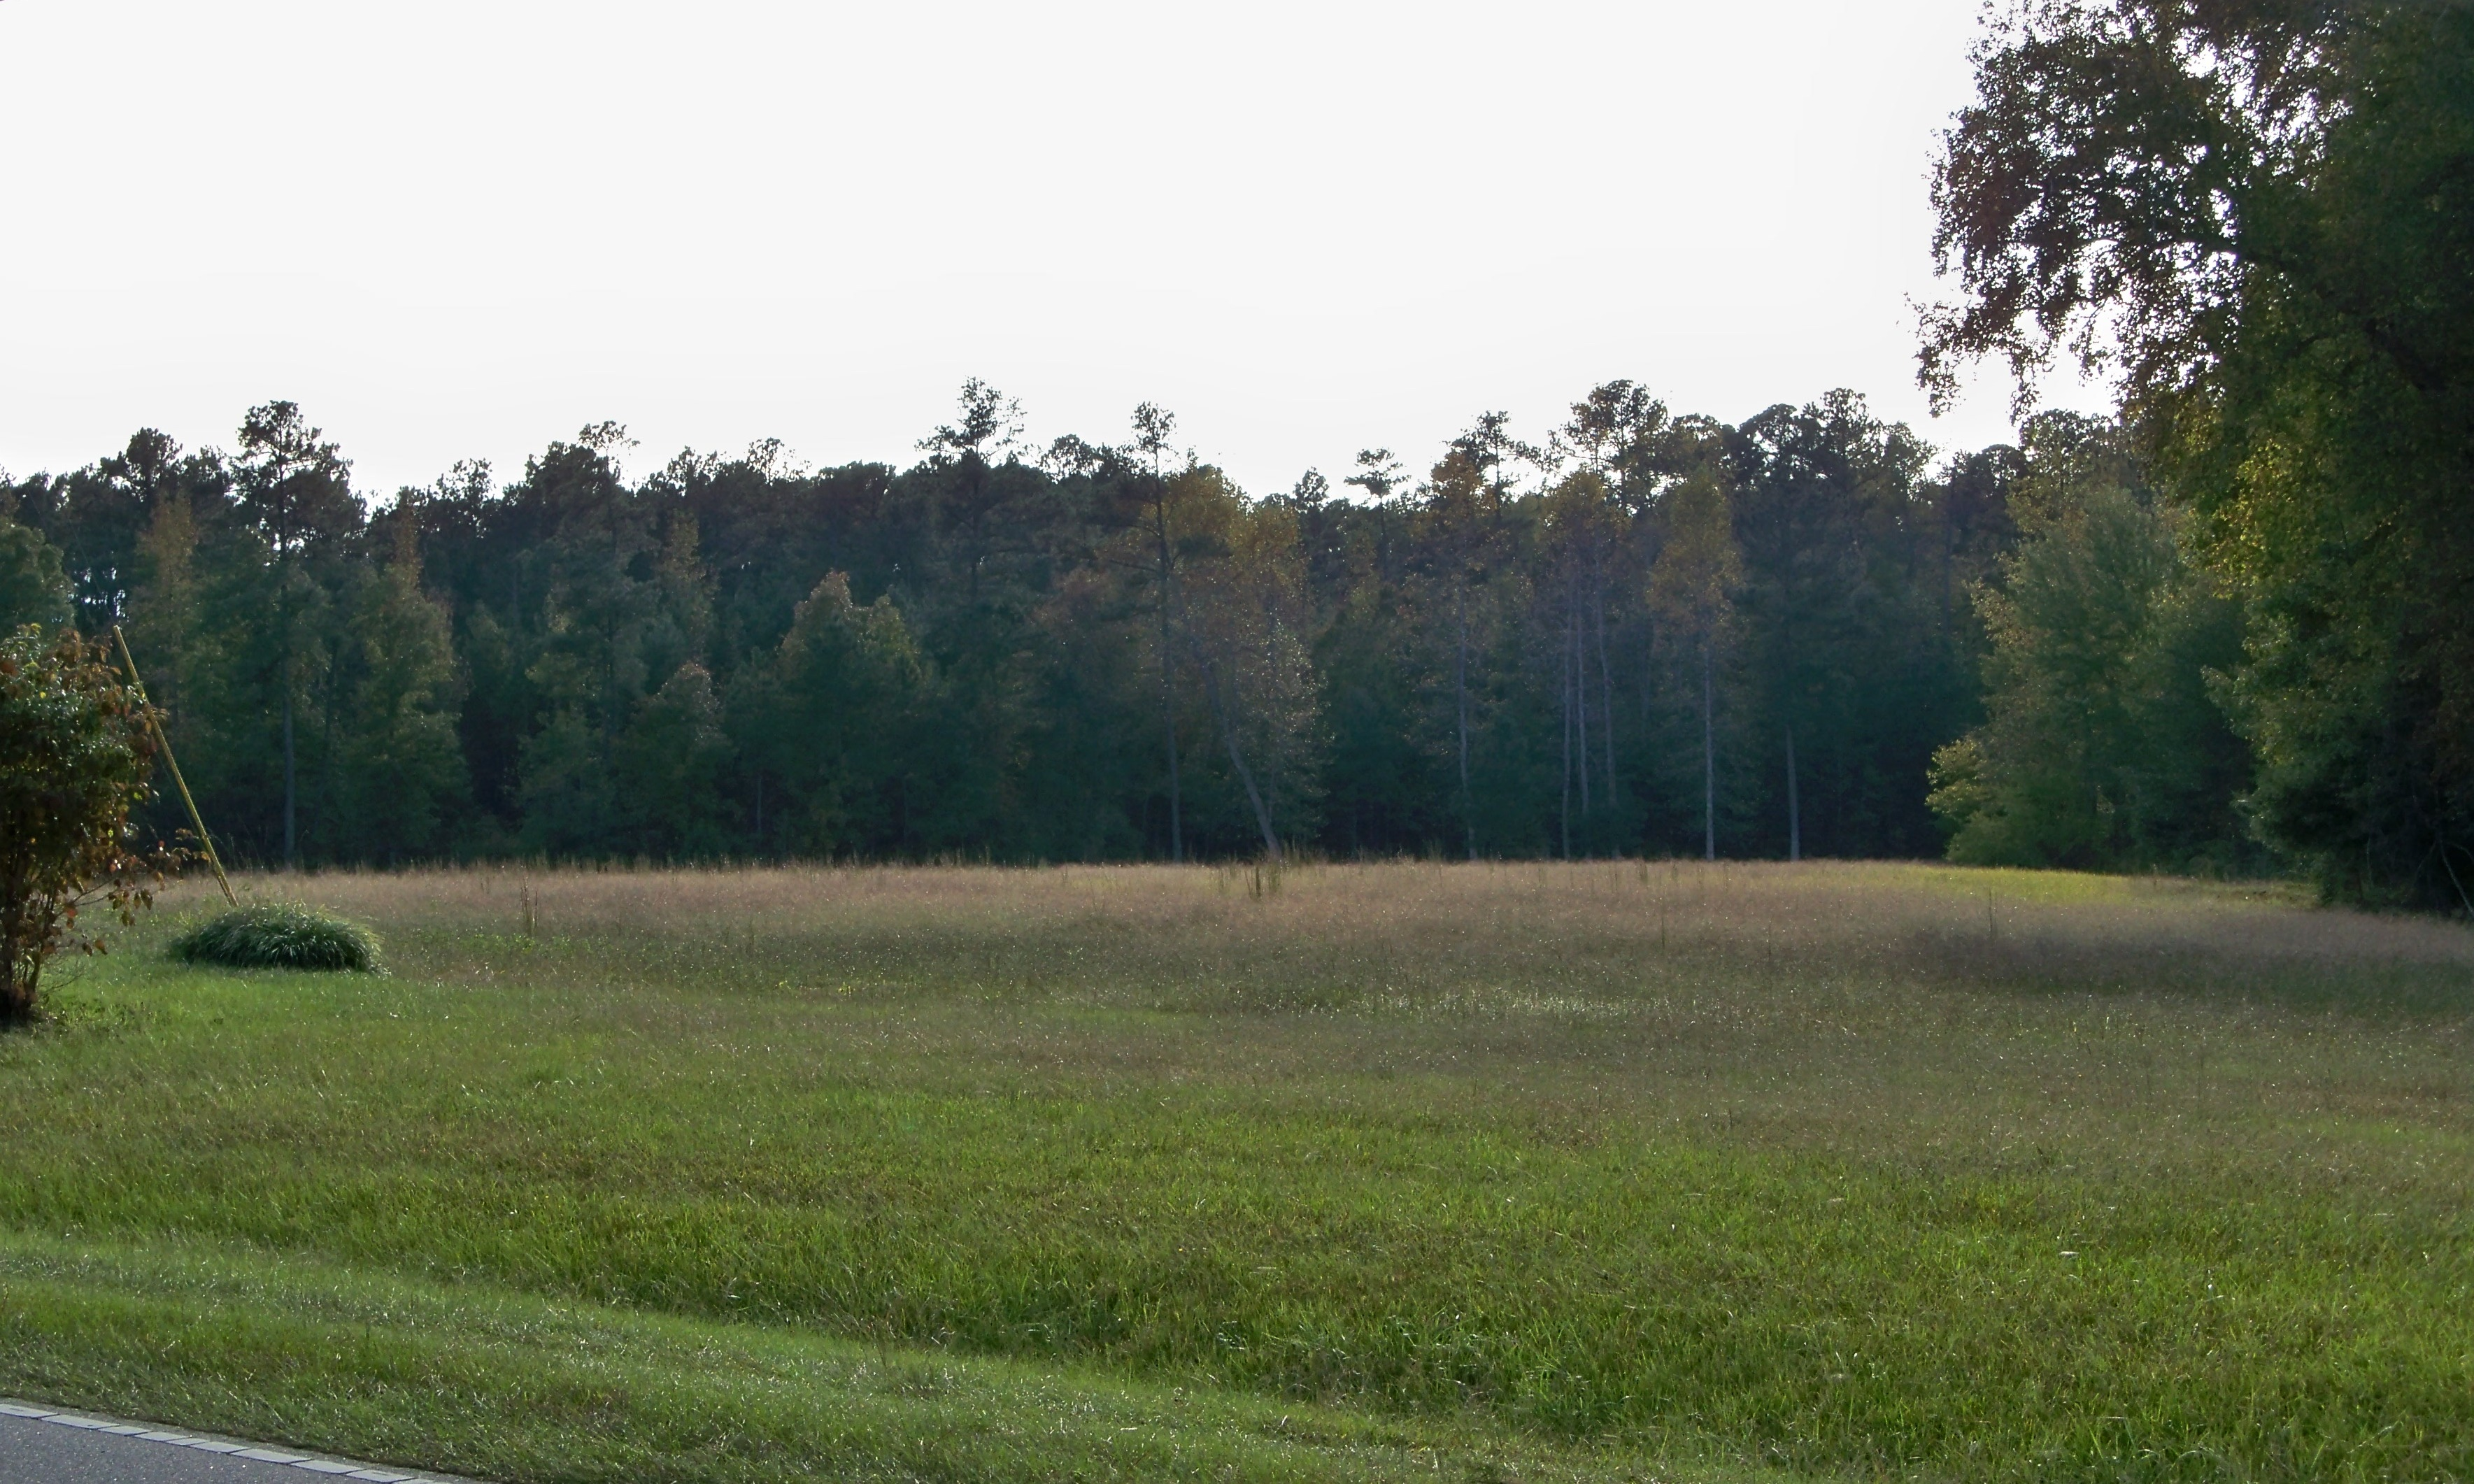 Build your dream home here! Convenient to Raleigh, Wilson, Rocky Mount.